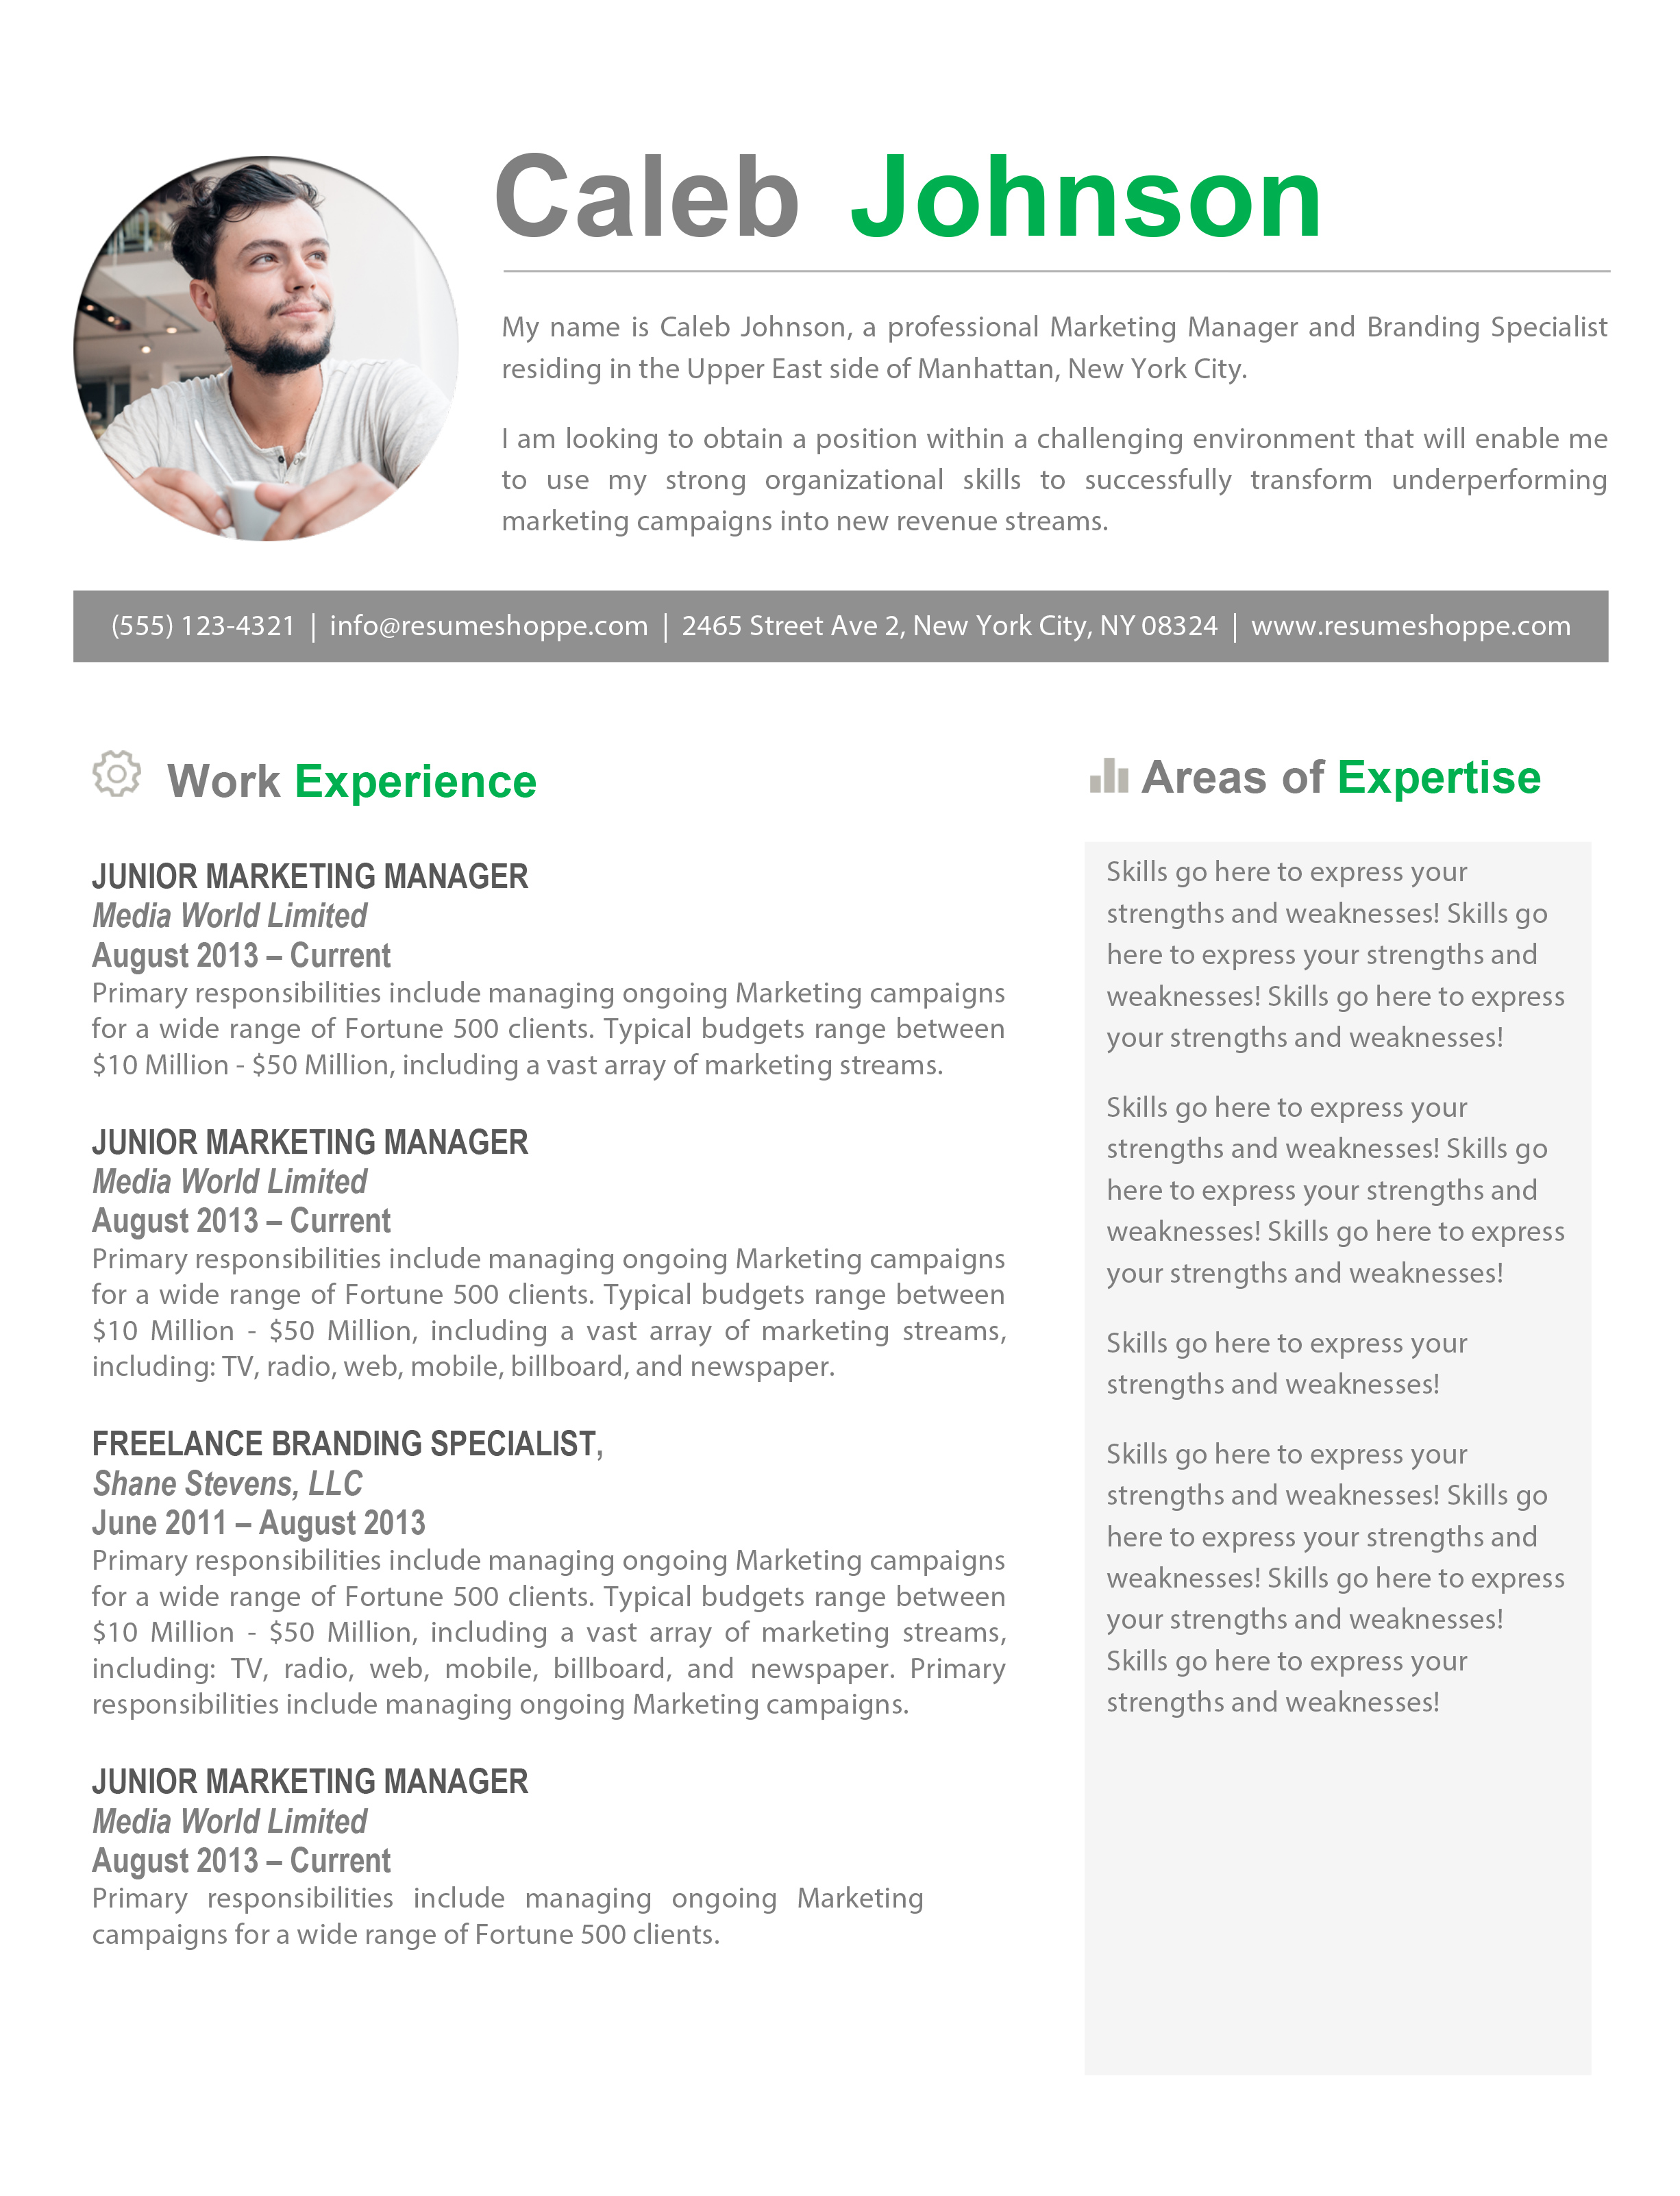 Cv Key Strengths Free Sample Resume Cover